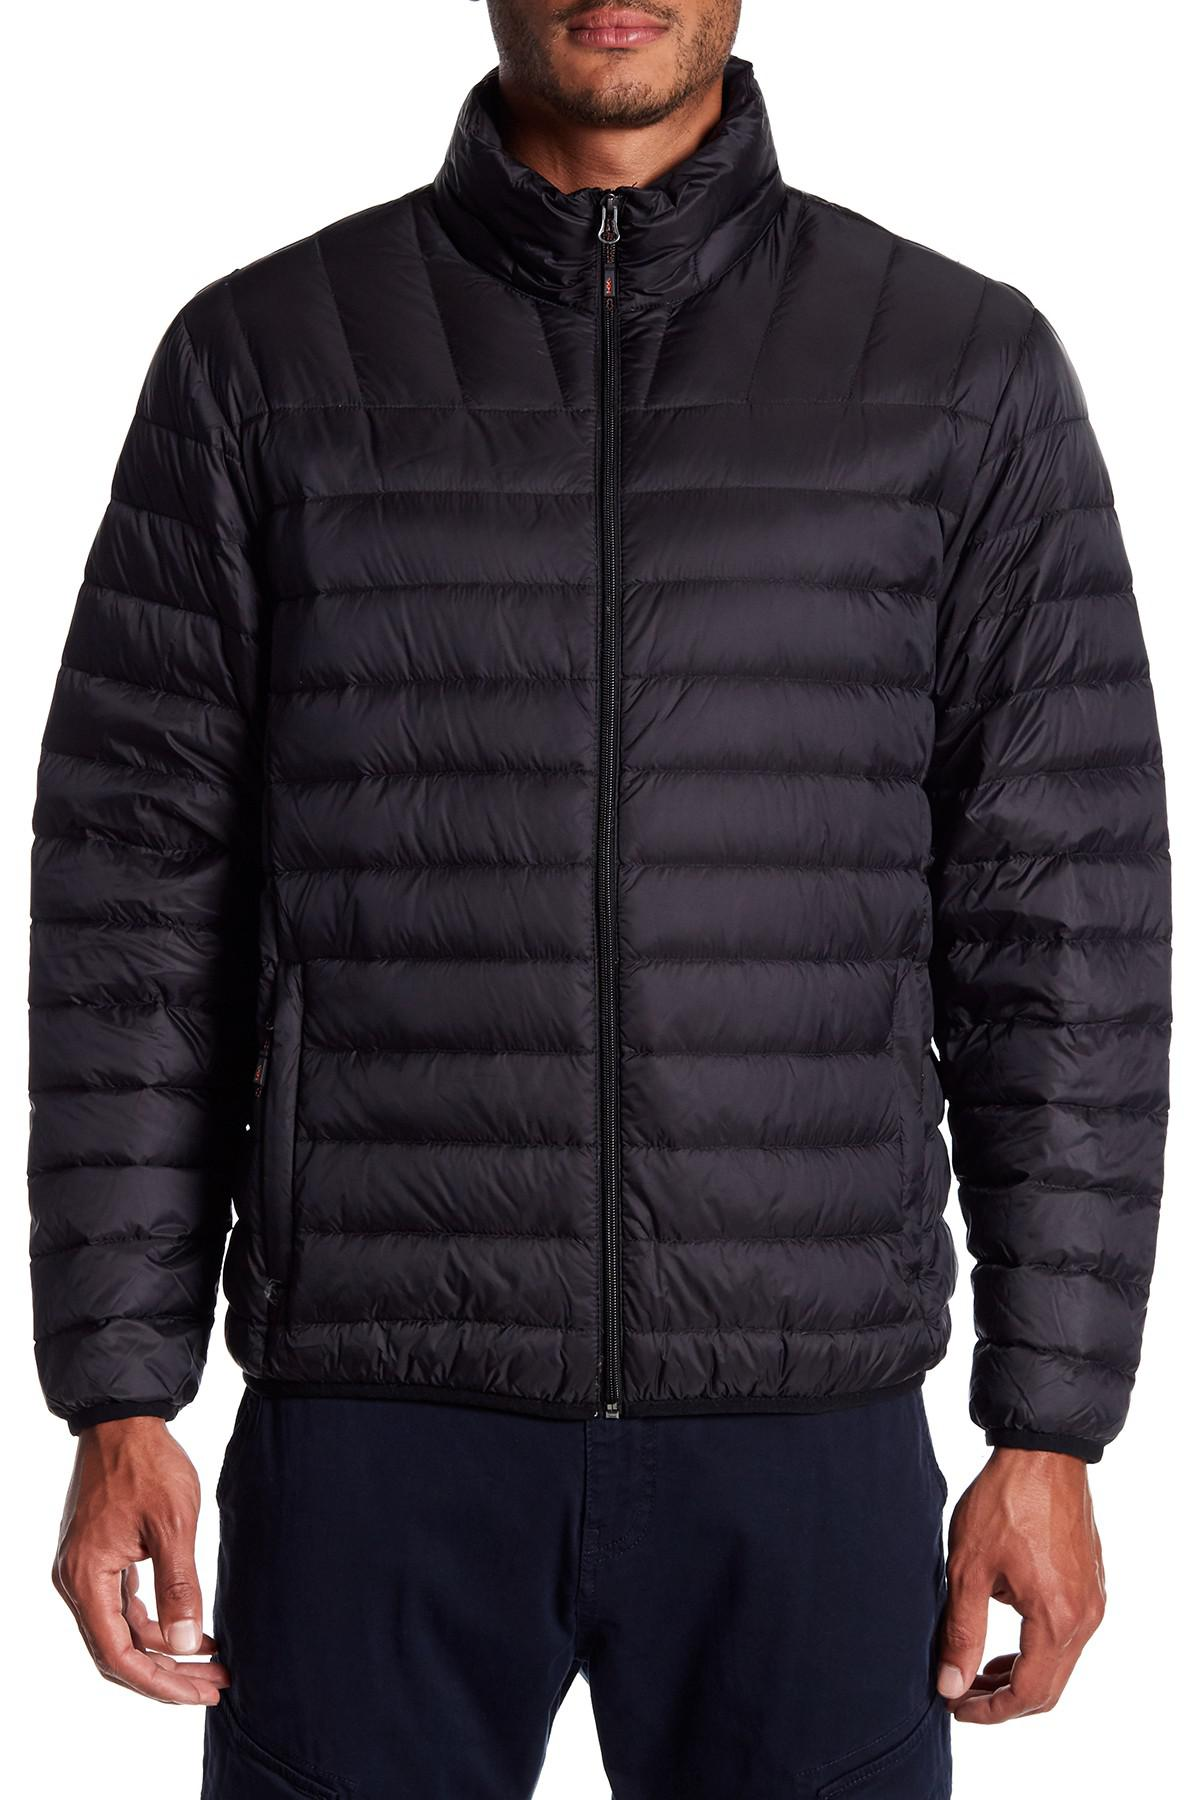 Lyst Hawke Amp Co Quilted Down Packable Jacket In Black